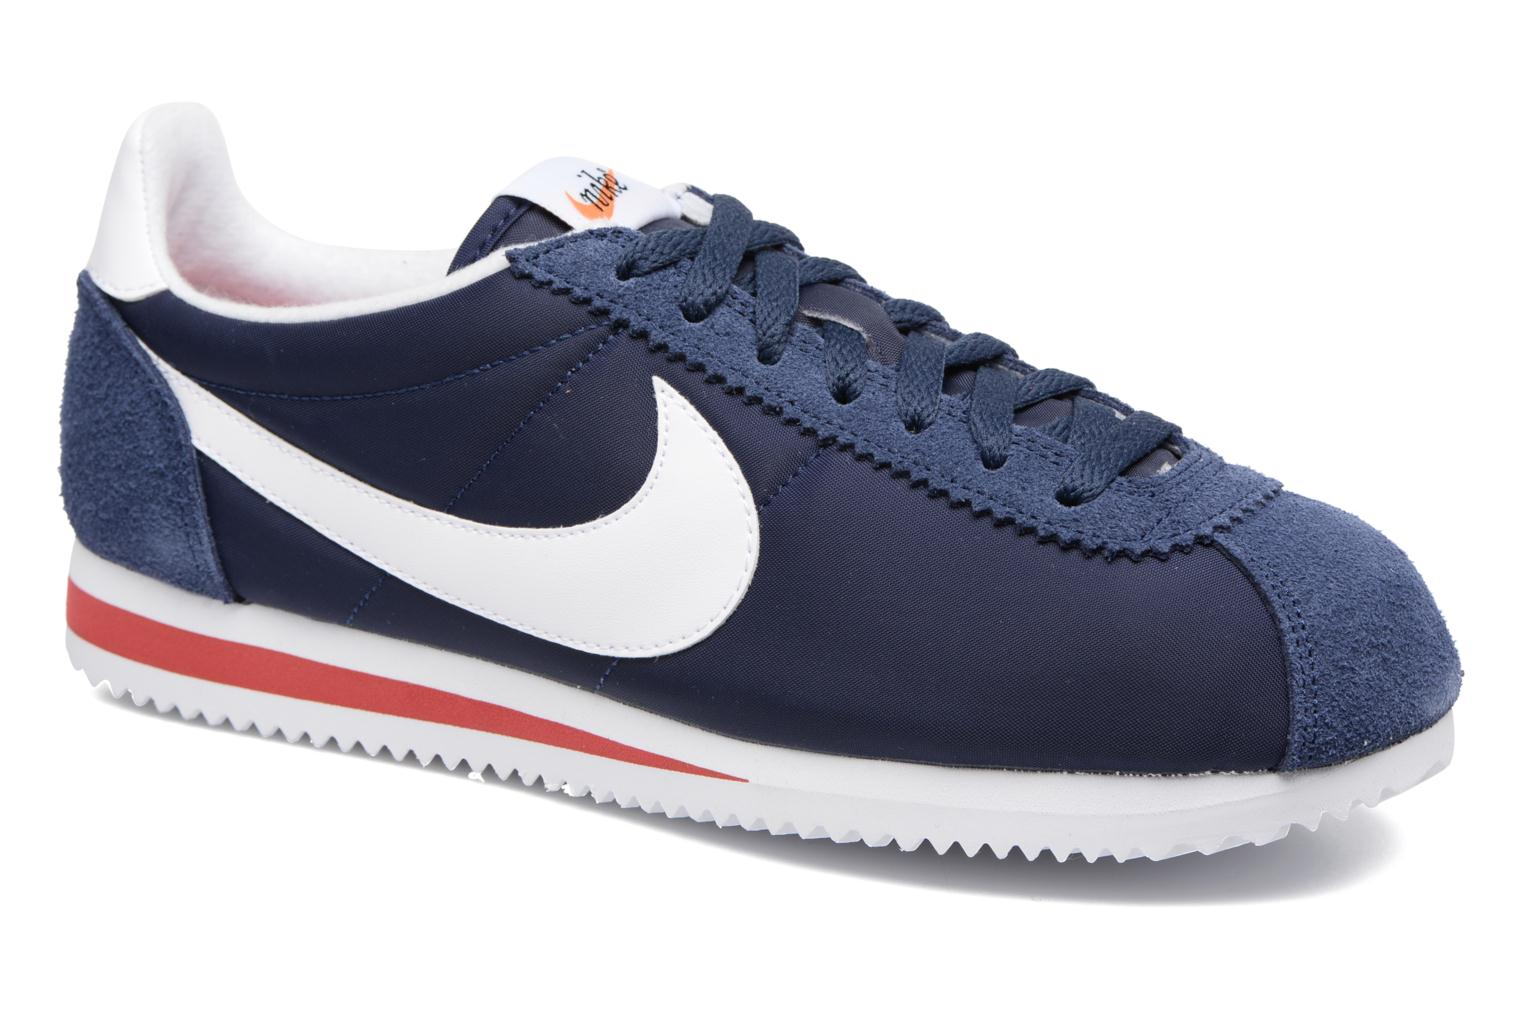 Classic Cortez Nylon Prem Midnight Navy/White-Varsity Red